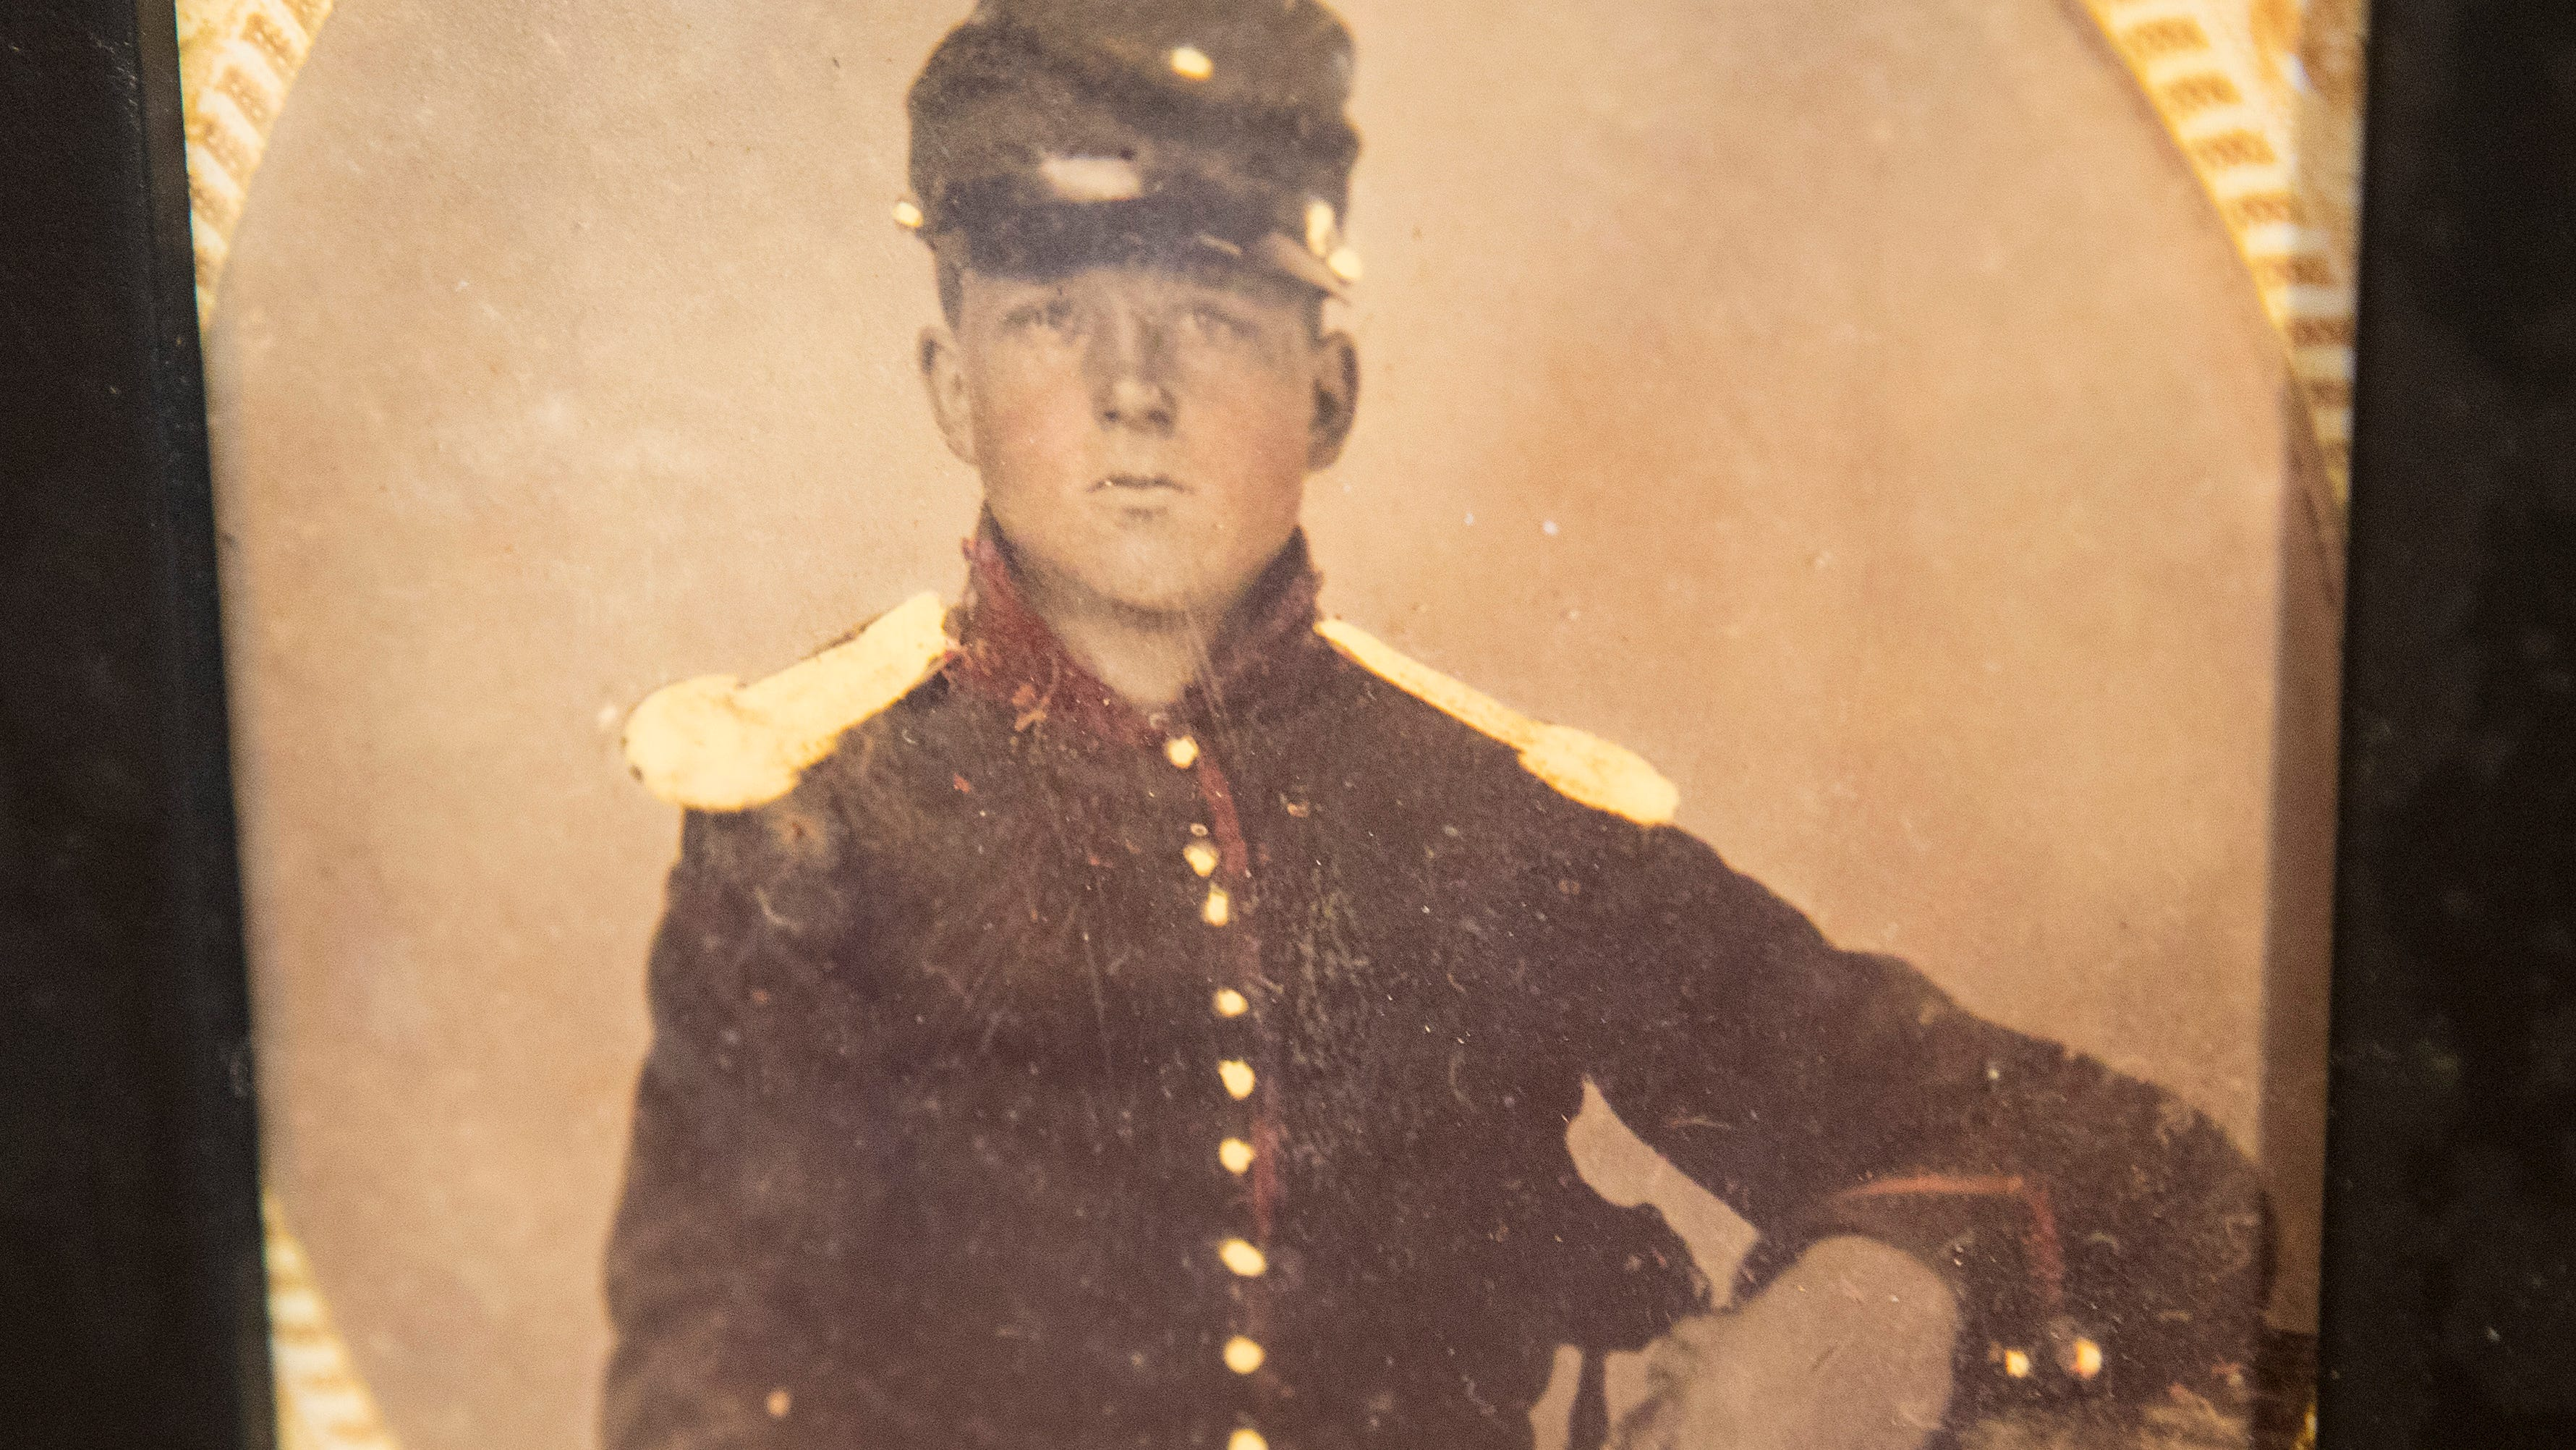 The first John Wesley Gray in the family served in the Civil War. He is the great-great grandfather of John Wesley Gray of Fort Myers Beach.